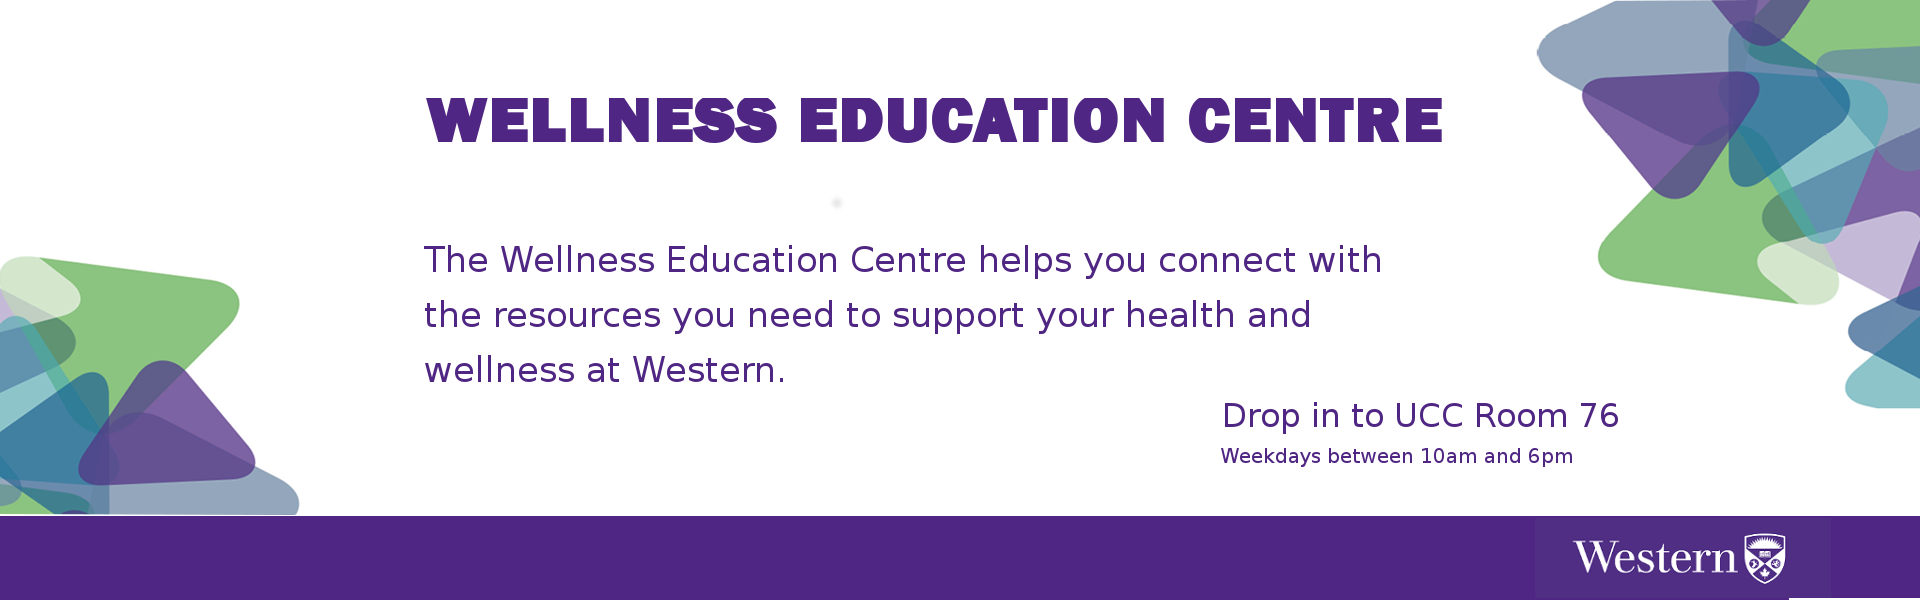 Wellness Education Centre - UCC 76